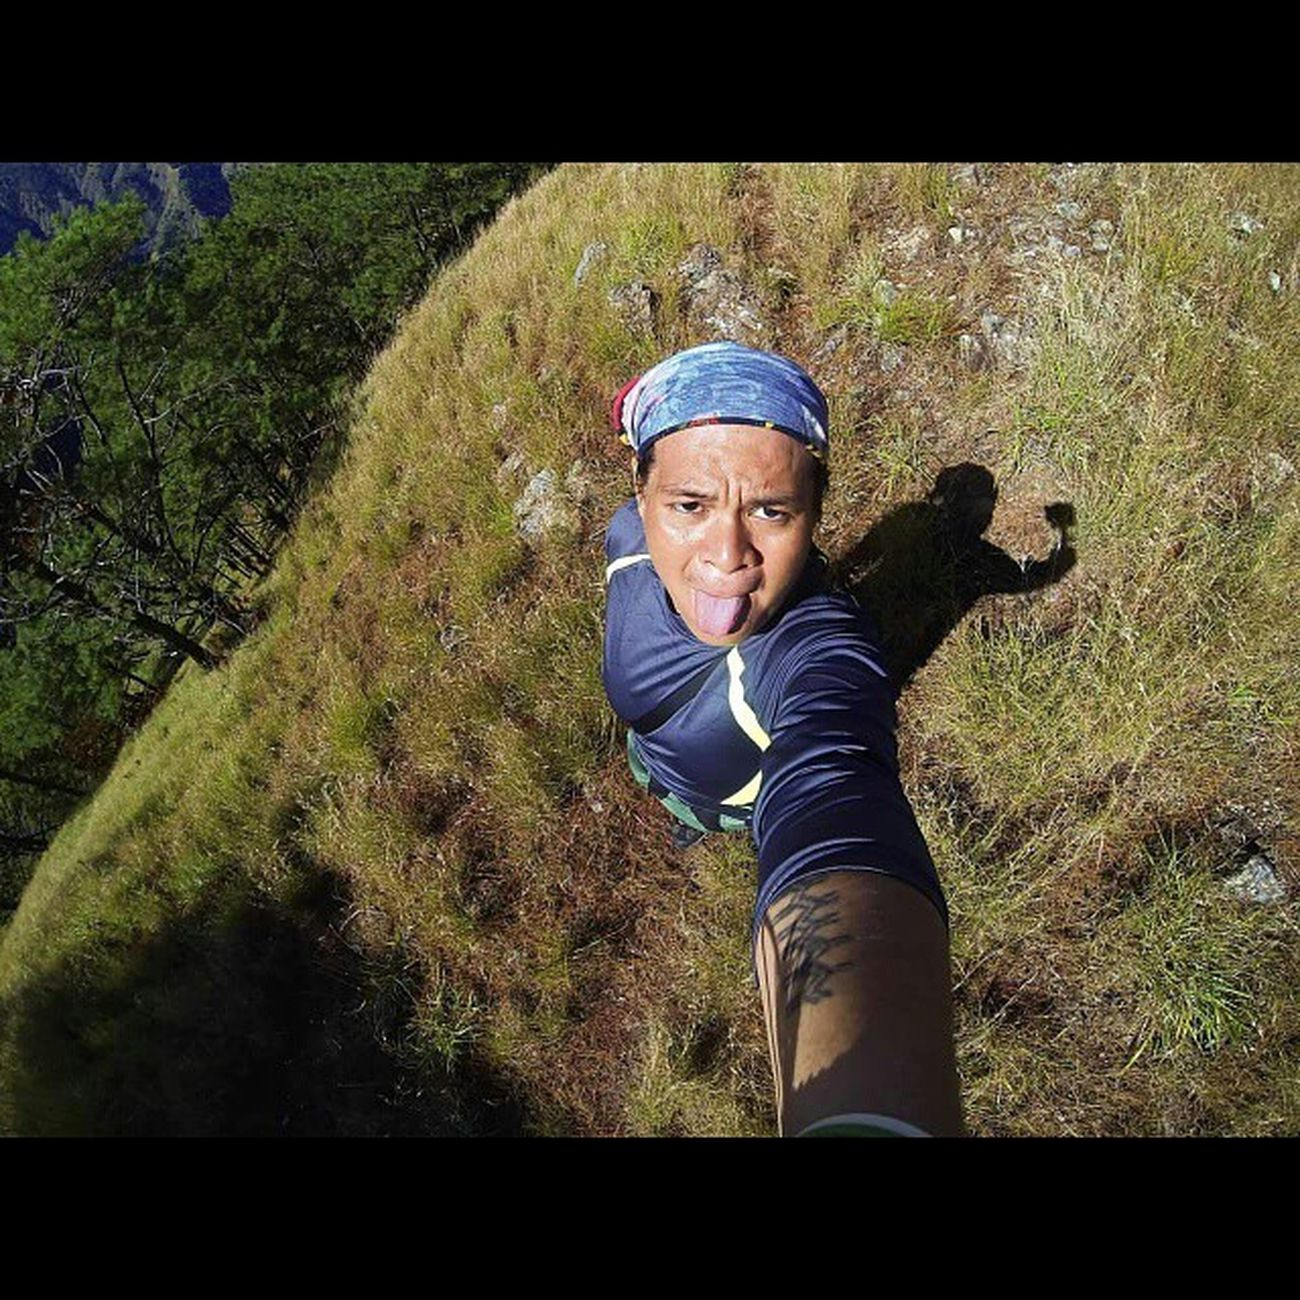 Buwis buhay selfie. Trail from Saulay campsite to Pakpako campsite going to Mt. Sicapoo summit. AIDSventure AsankaAids Travel Travelph Mountain Phmountains MtSicapoo IlocosHighestMountain Ridge Mountaineer Pinoymountaineer GoProHero3BE Goproph  Goprophilippines Lovetogopro Goprotravel Gopro Itsmorefuninthephilippines